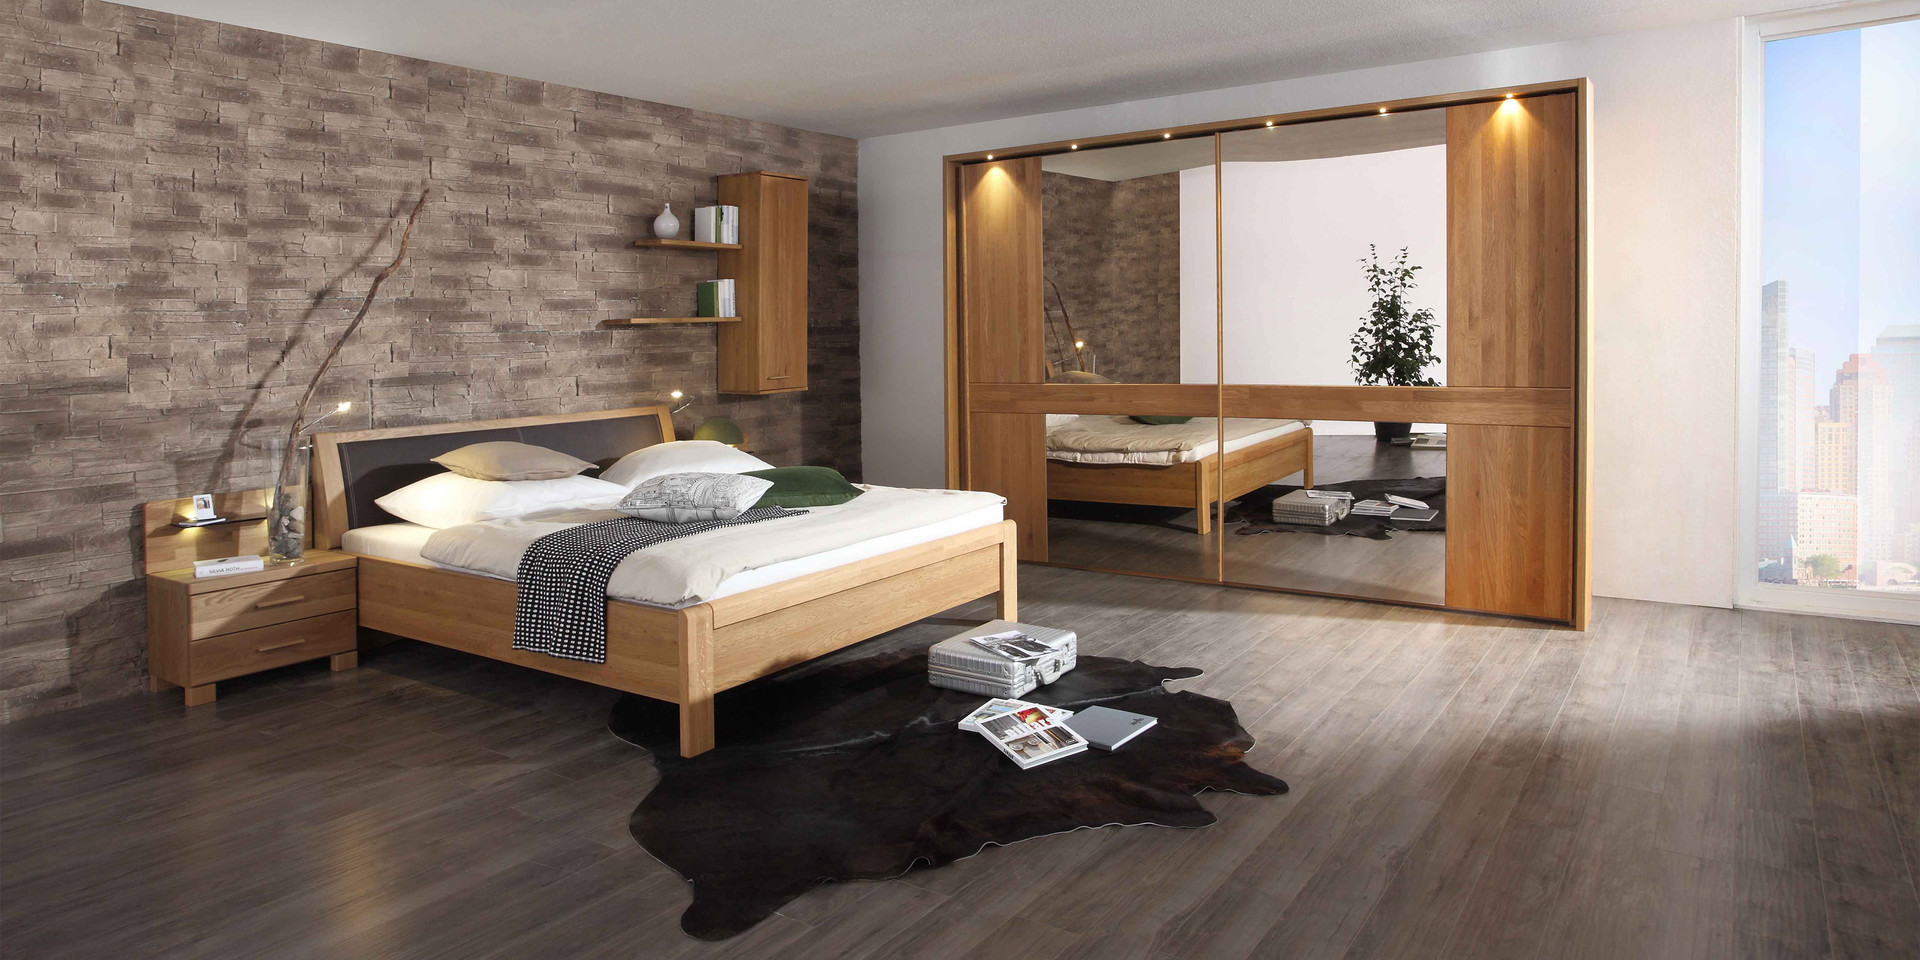 aus alt mach neu moebel muenchen. Black Bedroom Furniture Sets. Home Design Ideas